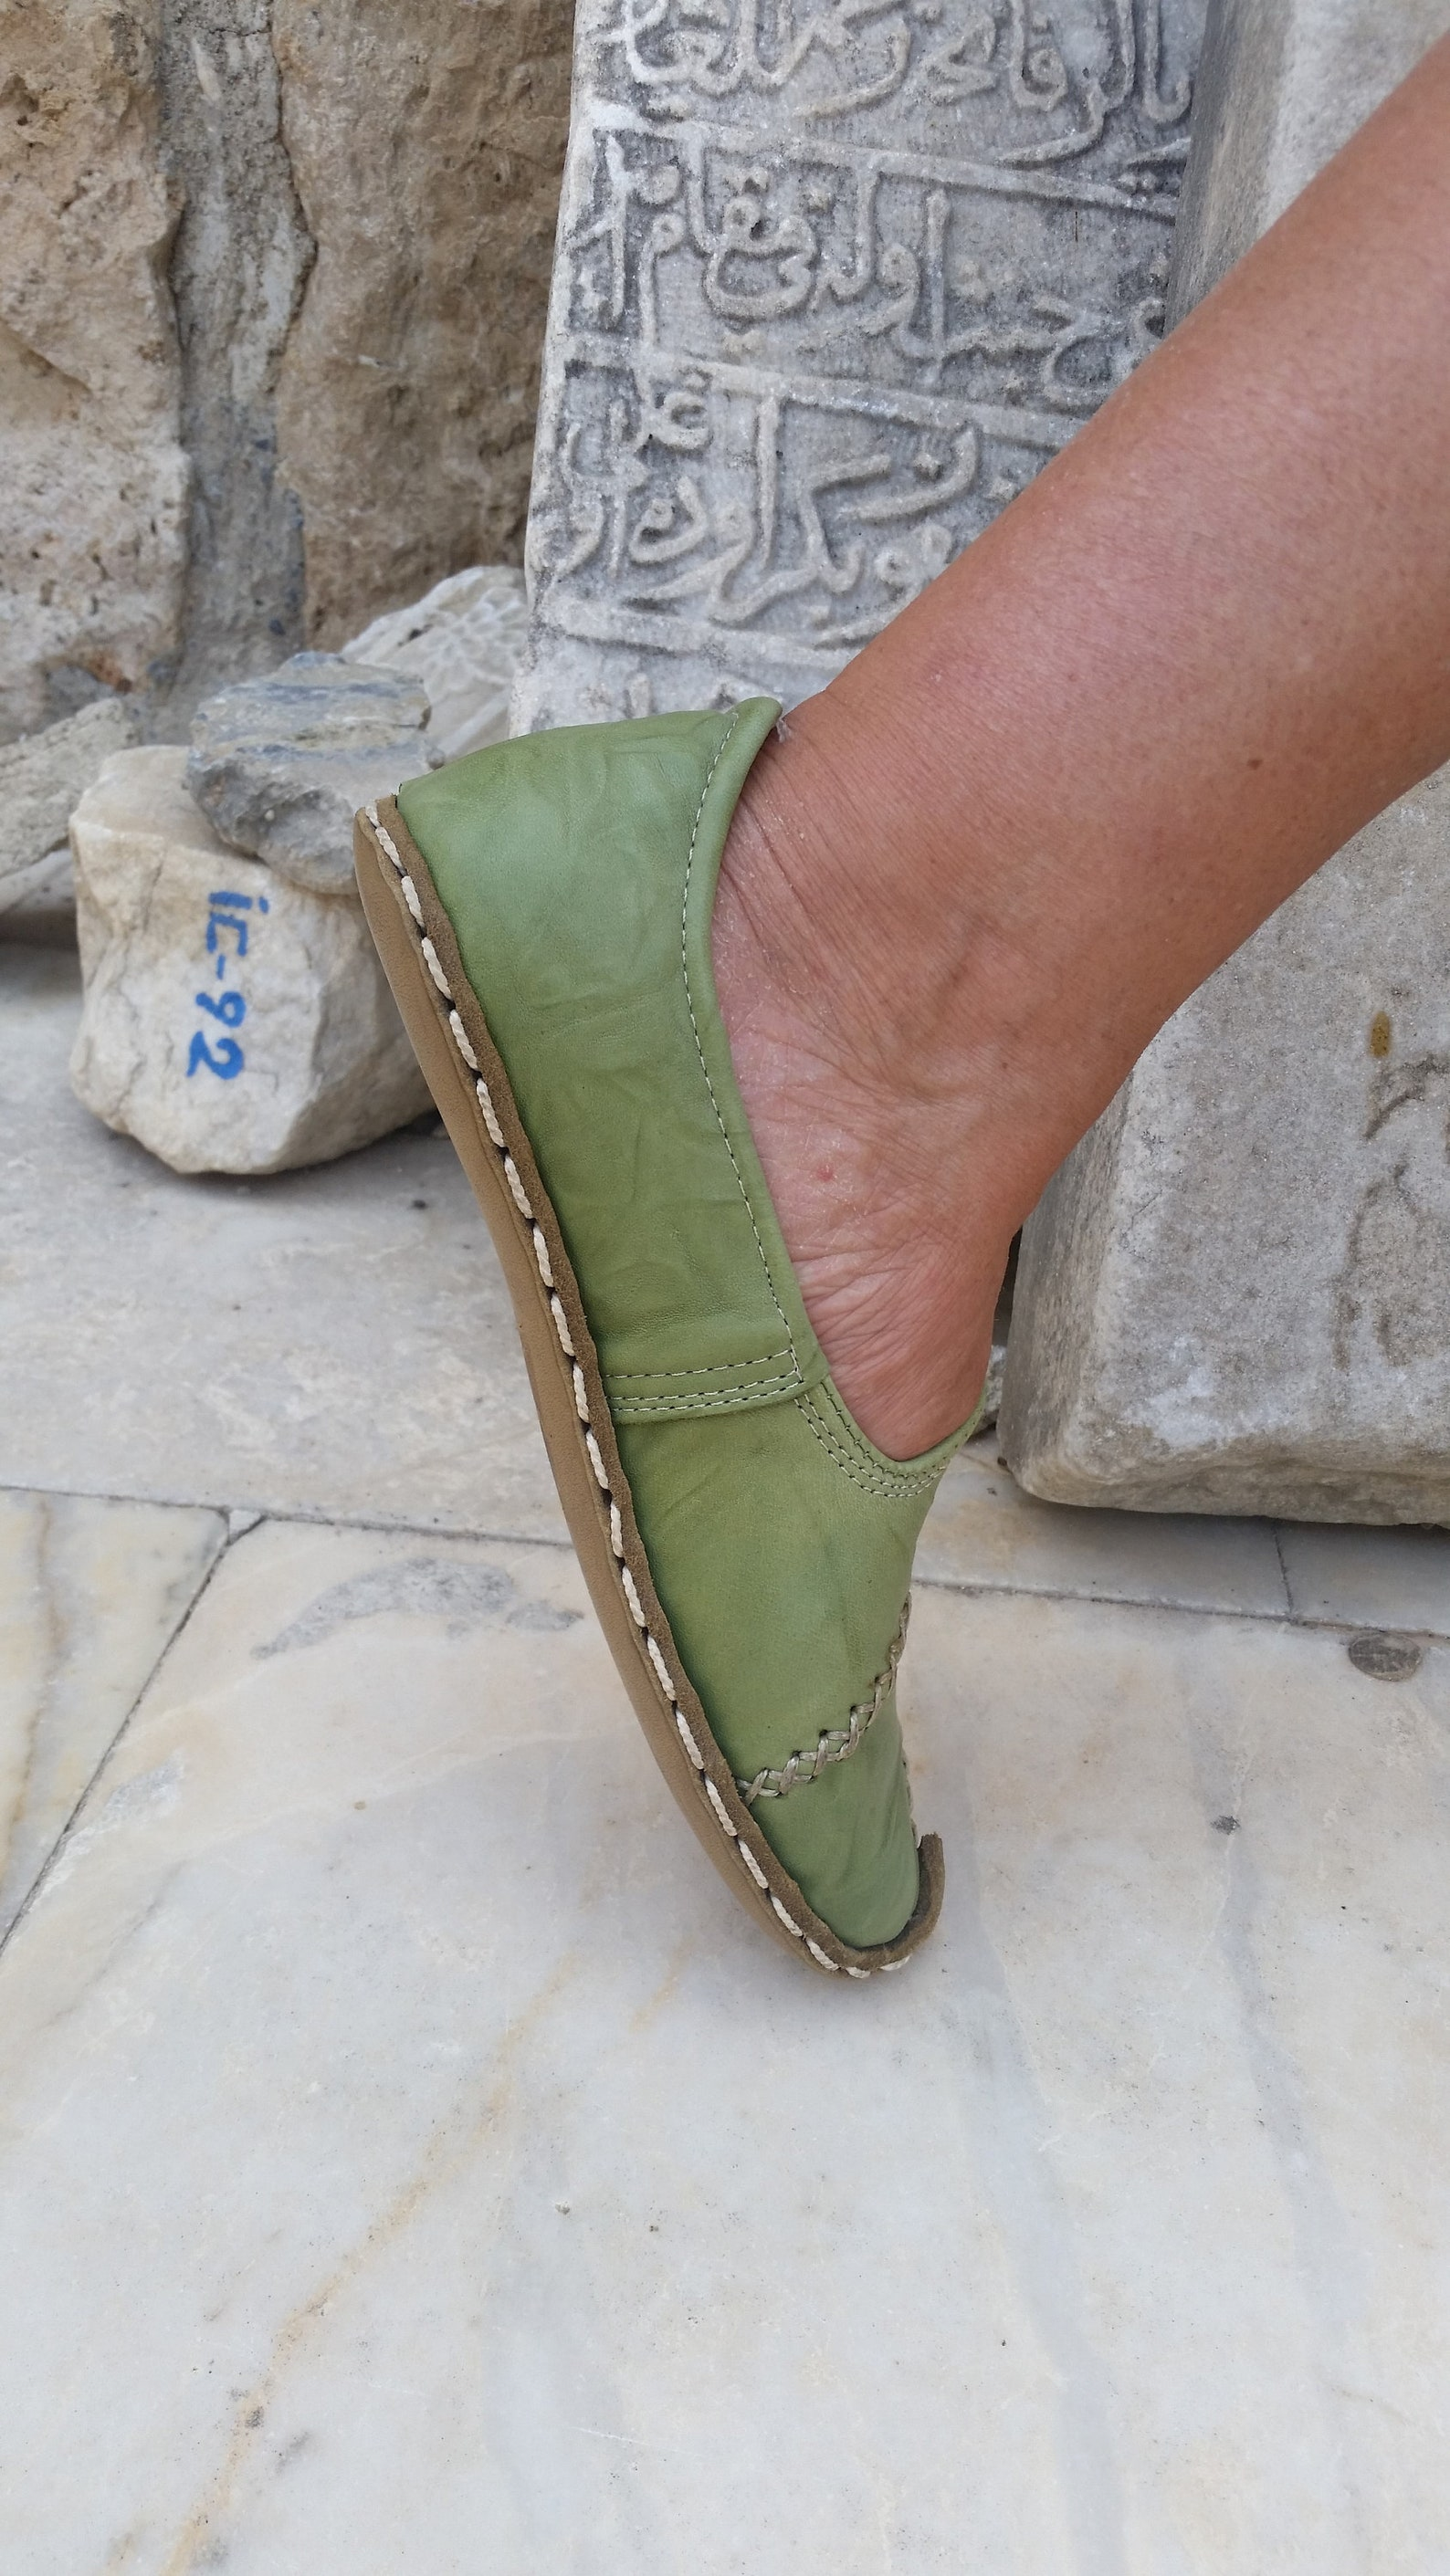 ballet flat  handcrafted leather   renaissance   medieval slipper   driving shoe   lady janes   on my feet all day   no smell  